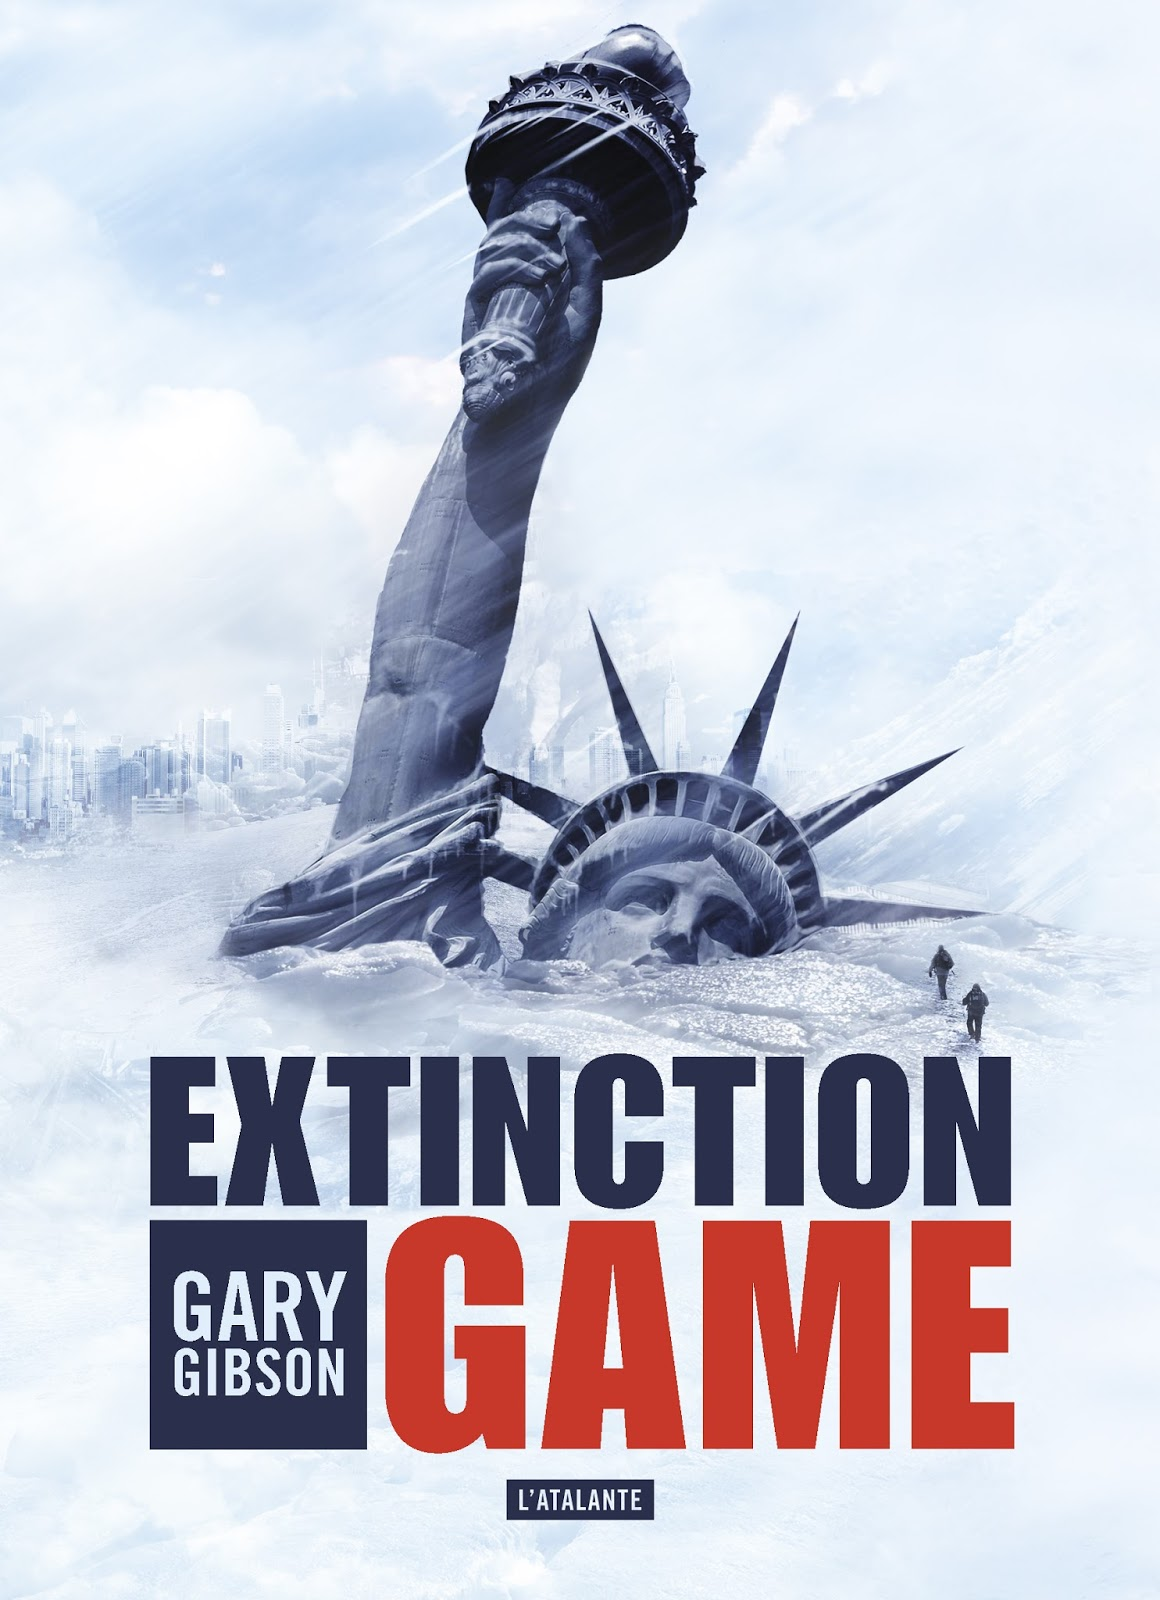 extinction game gary gibson